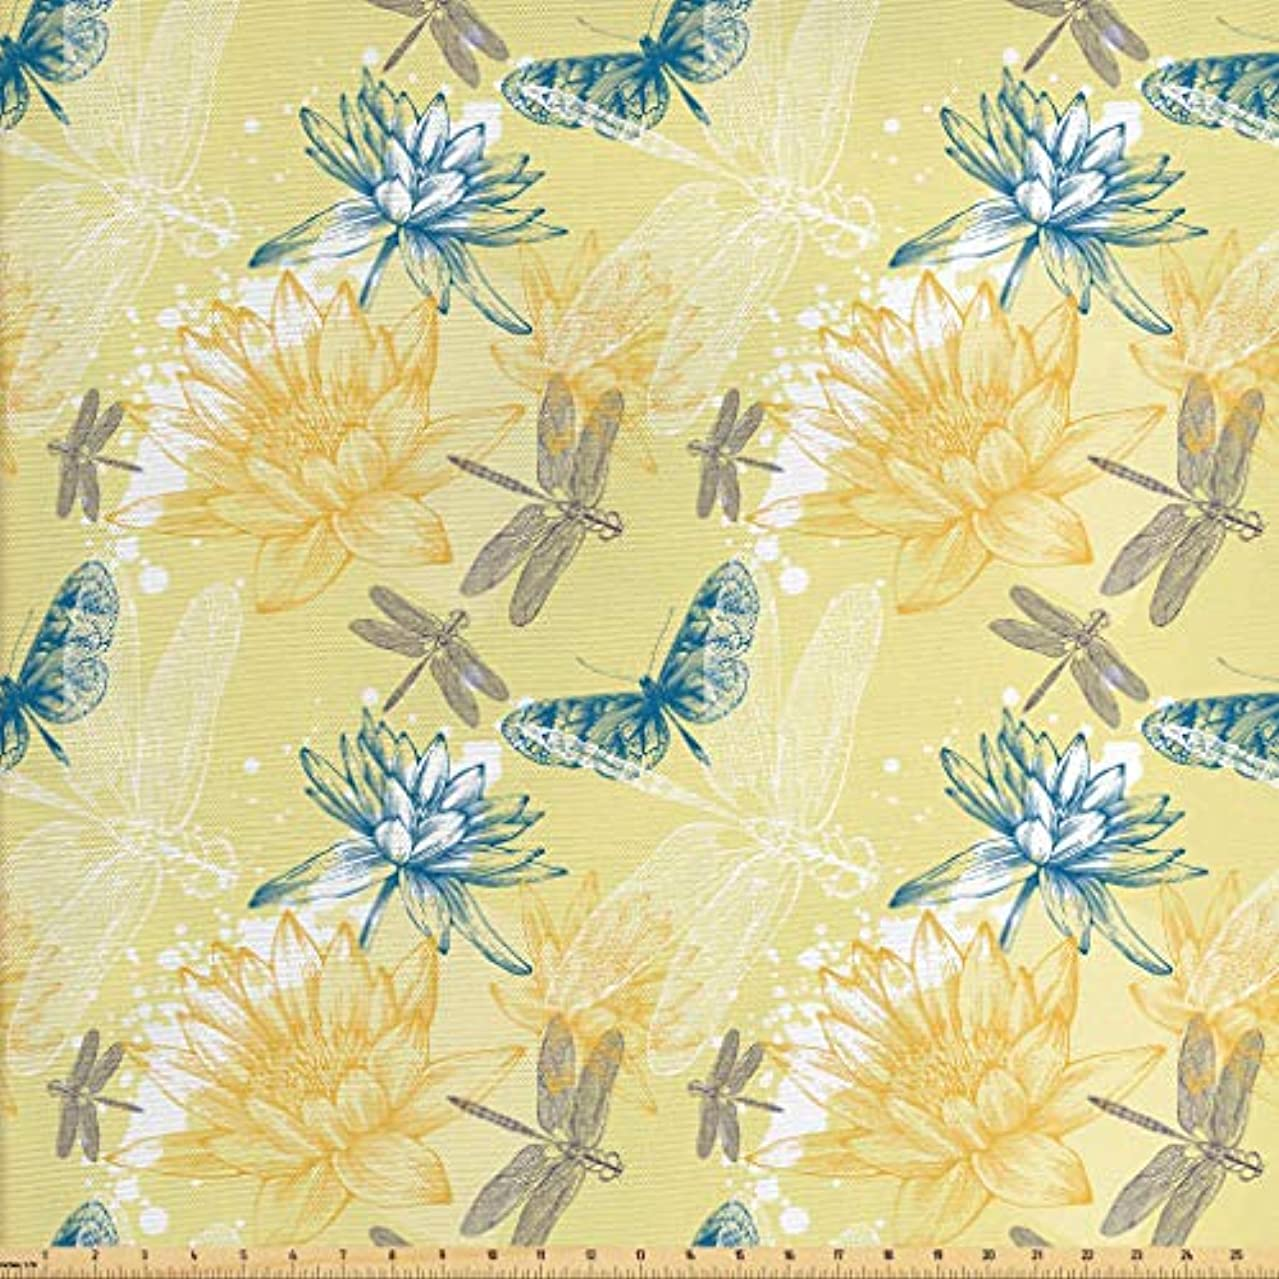 Lunarable Dragonfly Fabric The Yard, Boho Style Plants Dragonflies Sketchy Illustration, Decorative Fabric Upholstery Home Accents, 2 Yards, Yellow White Petrol Blue